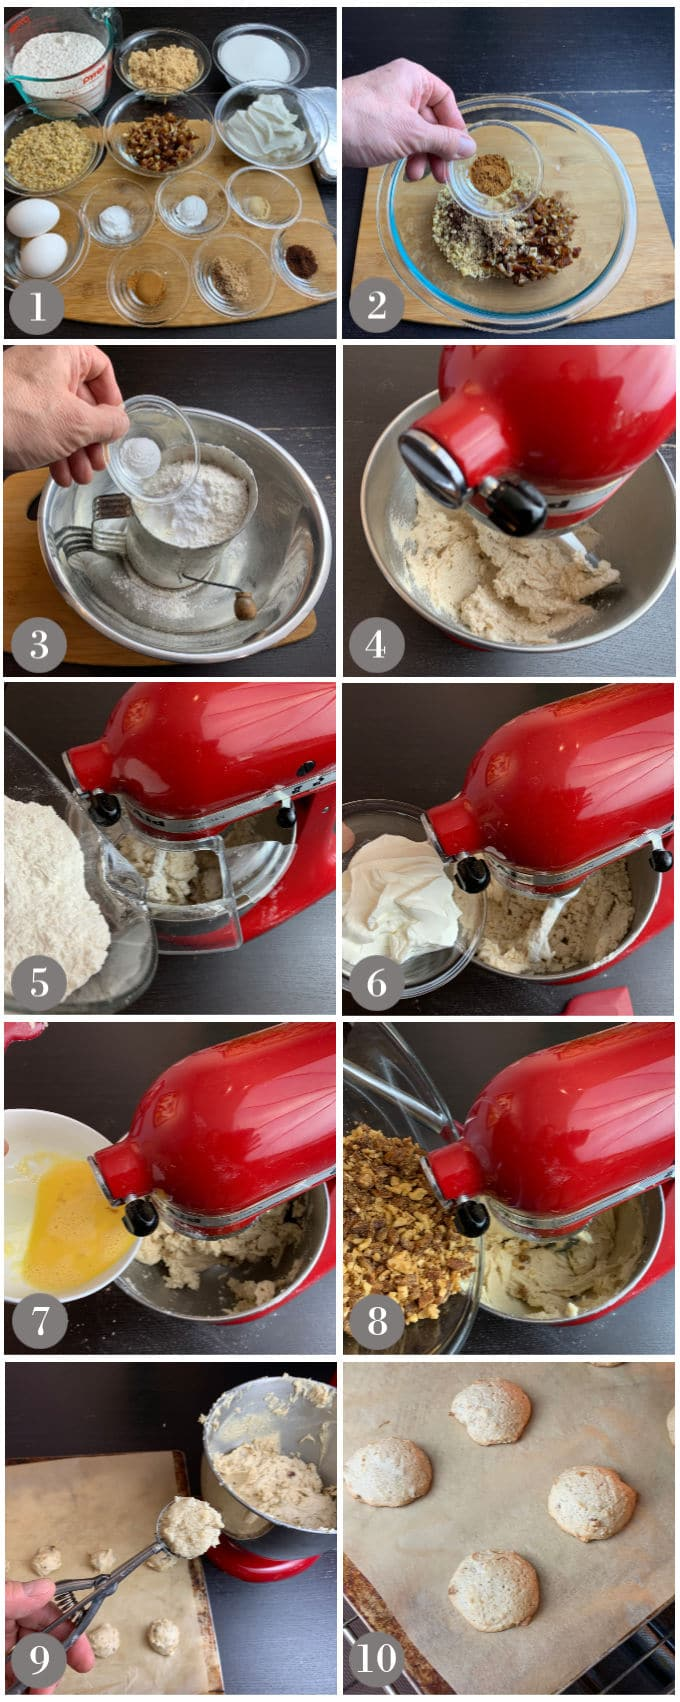 A collage of photos showing the ingredients and step to make hermit cookies with a stand mixer then baked in the oven.